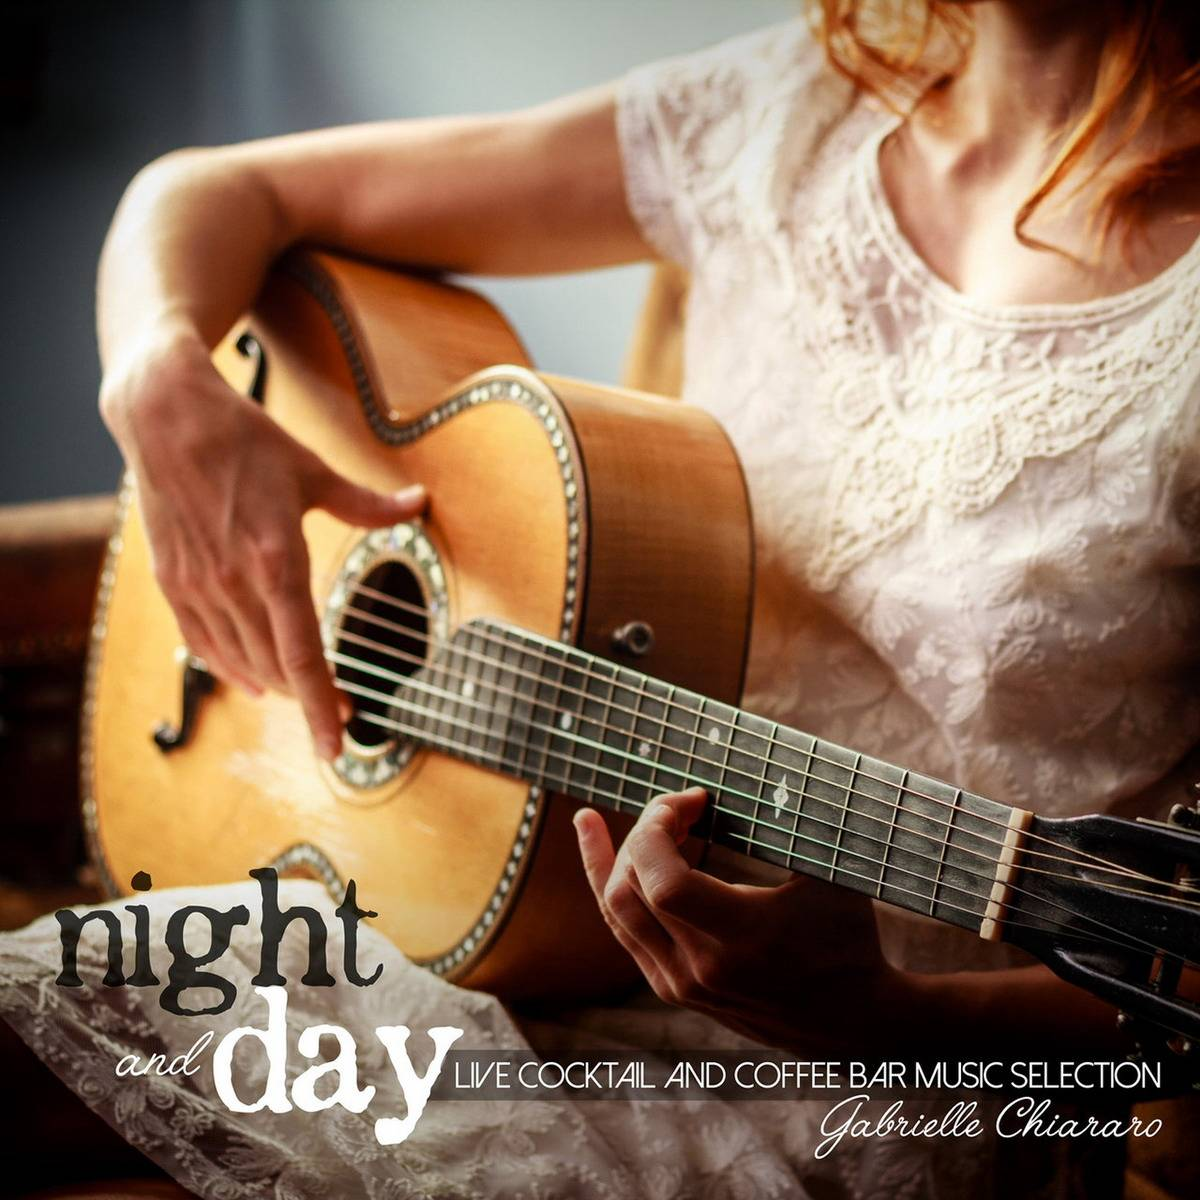 Gabrielle Chiararo - Night And Day: Live Cocktail And Coffee Bar Music Selection (2016)